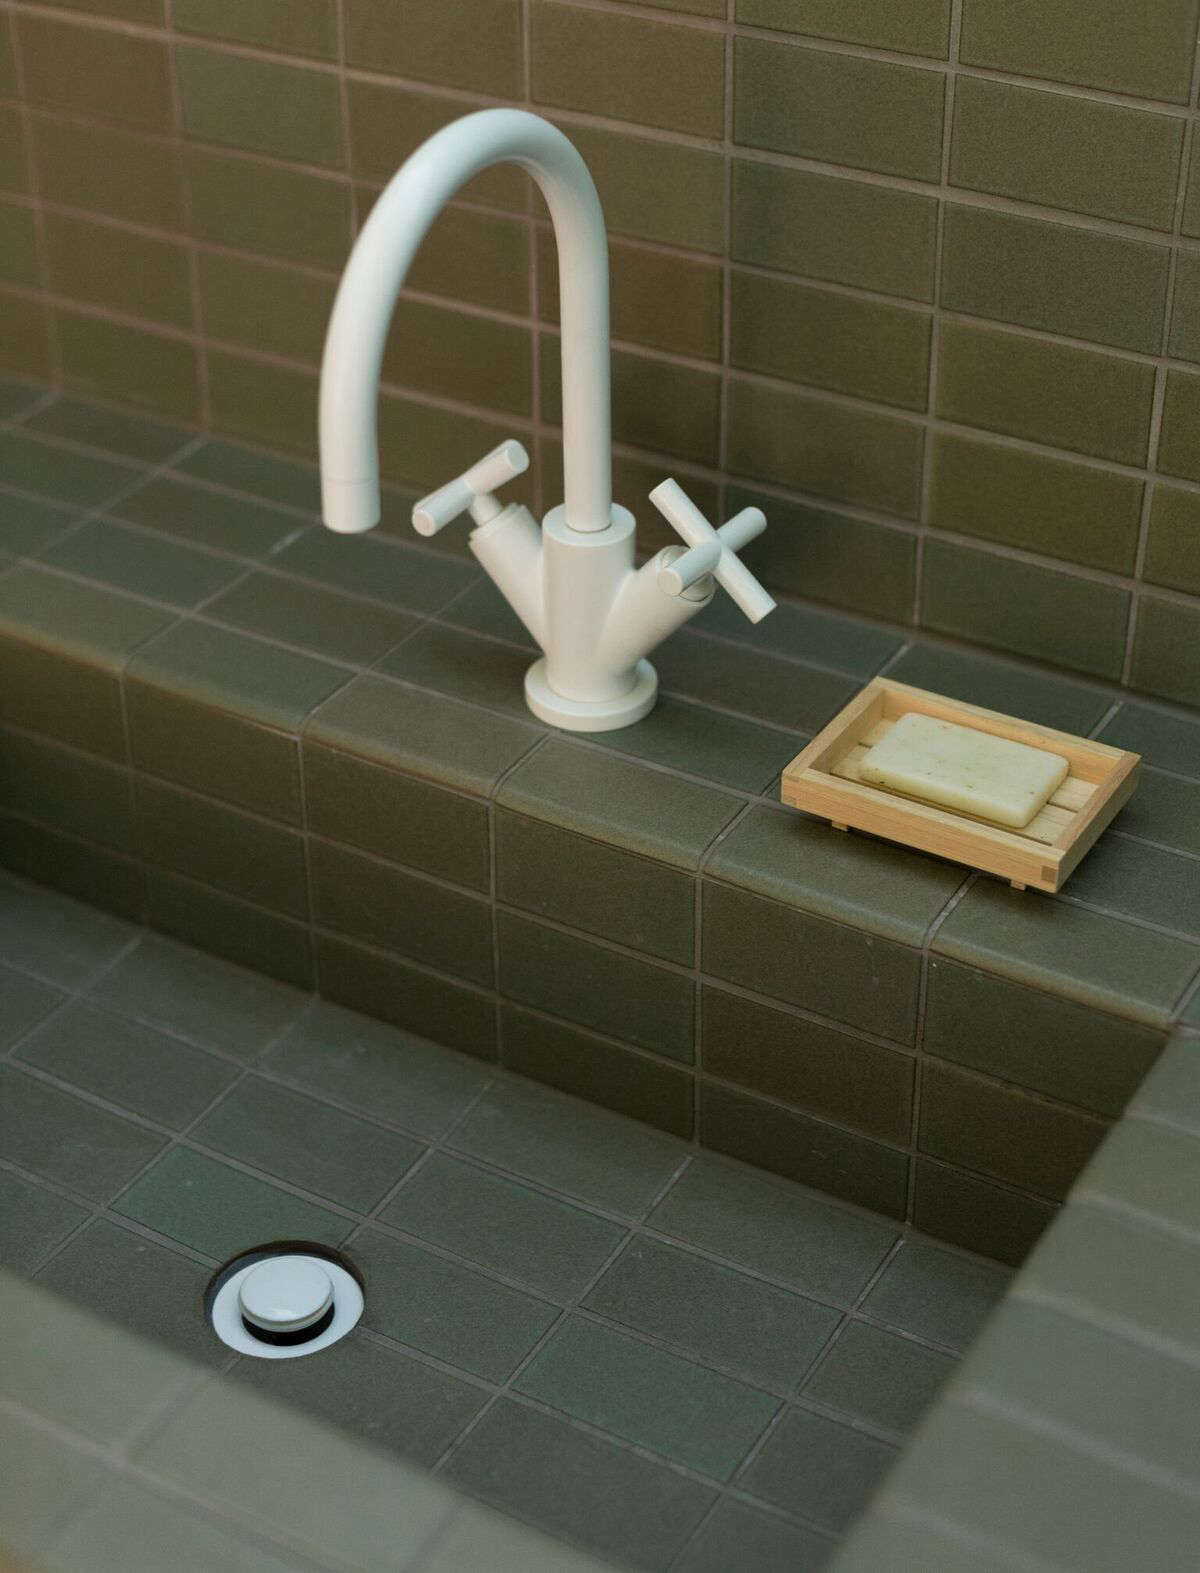 A trick to minimize the appearance of dirt: In a bath tiled completely in olive green, New Zealand designer Katie Lockhart opted for darker grout. See Bathroom of the Week: Two Bath Remodels with Bold Green Tile in Auckland. Photograph by Neeve Woodward, courtesy of Katie Lockhart Studio.